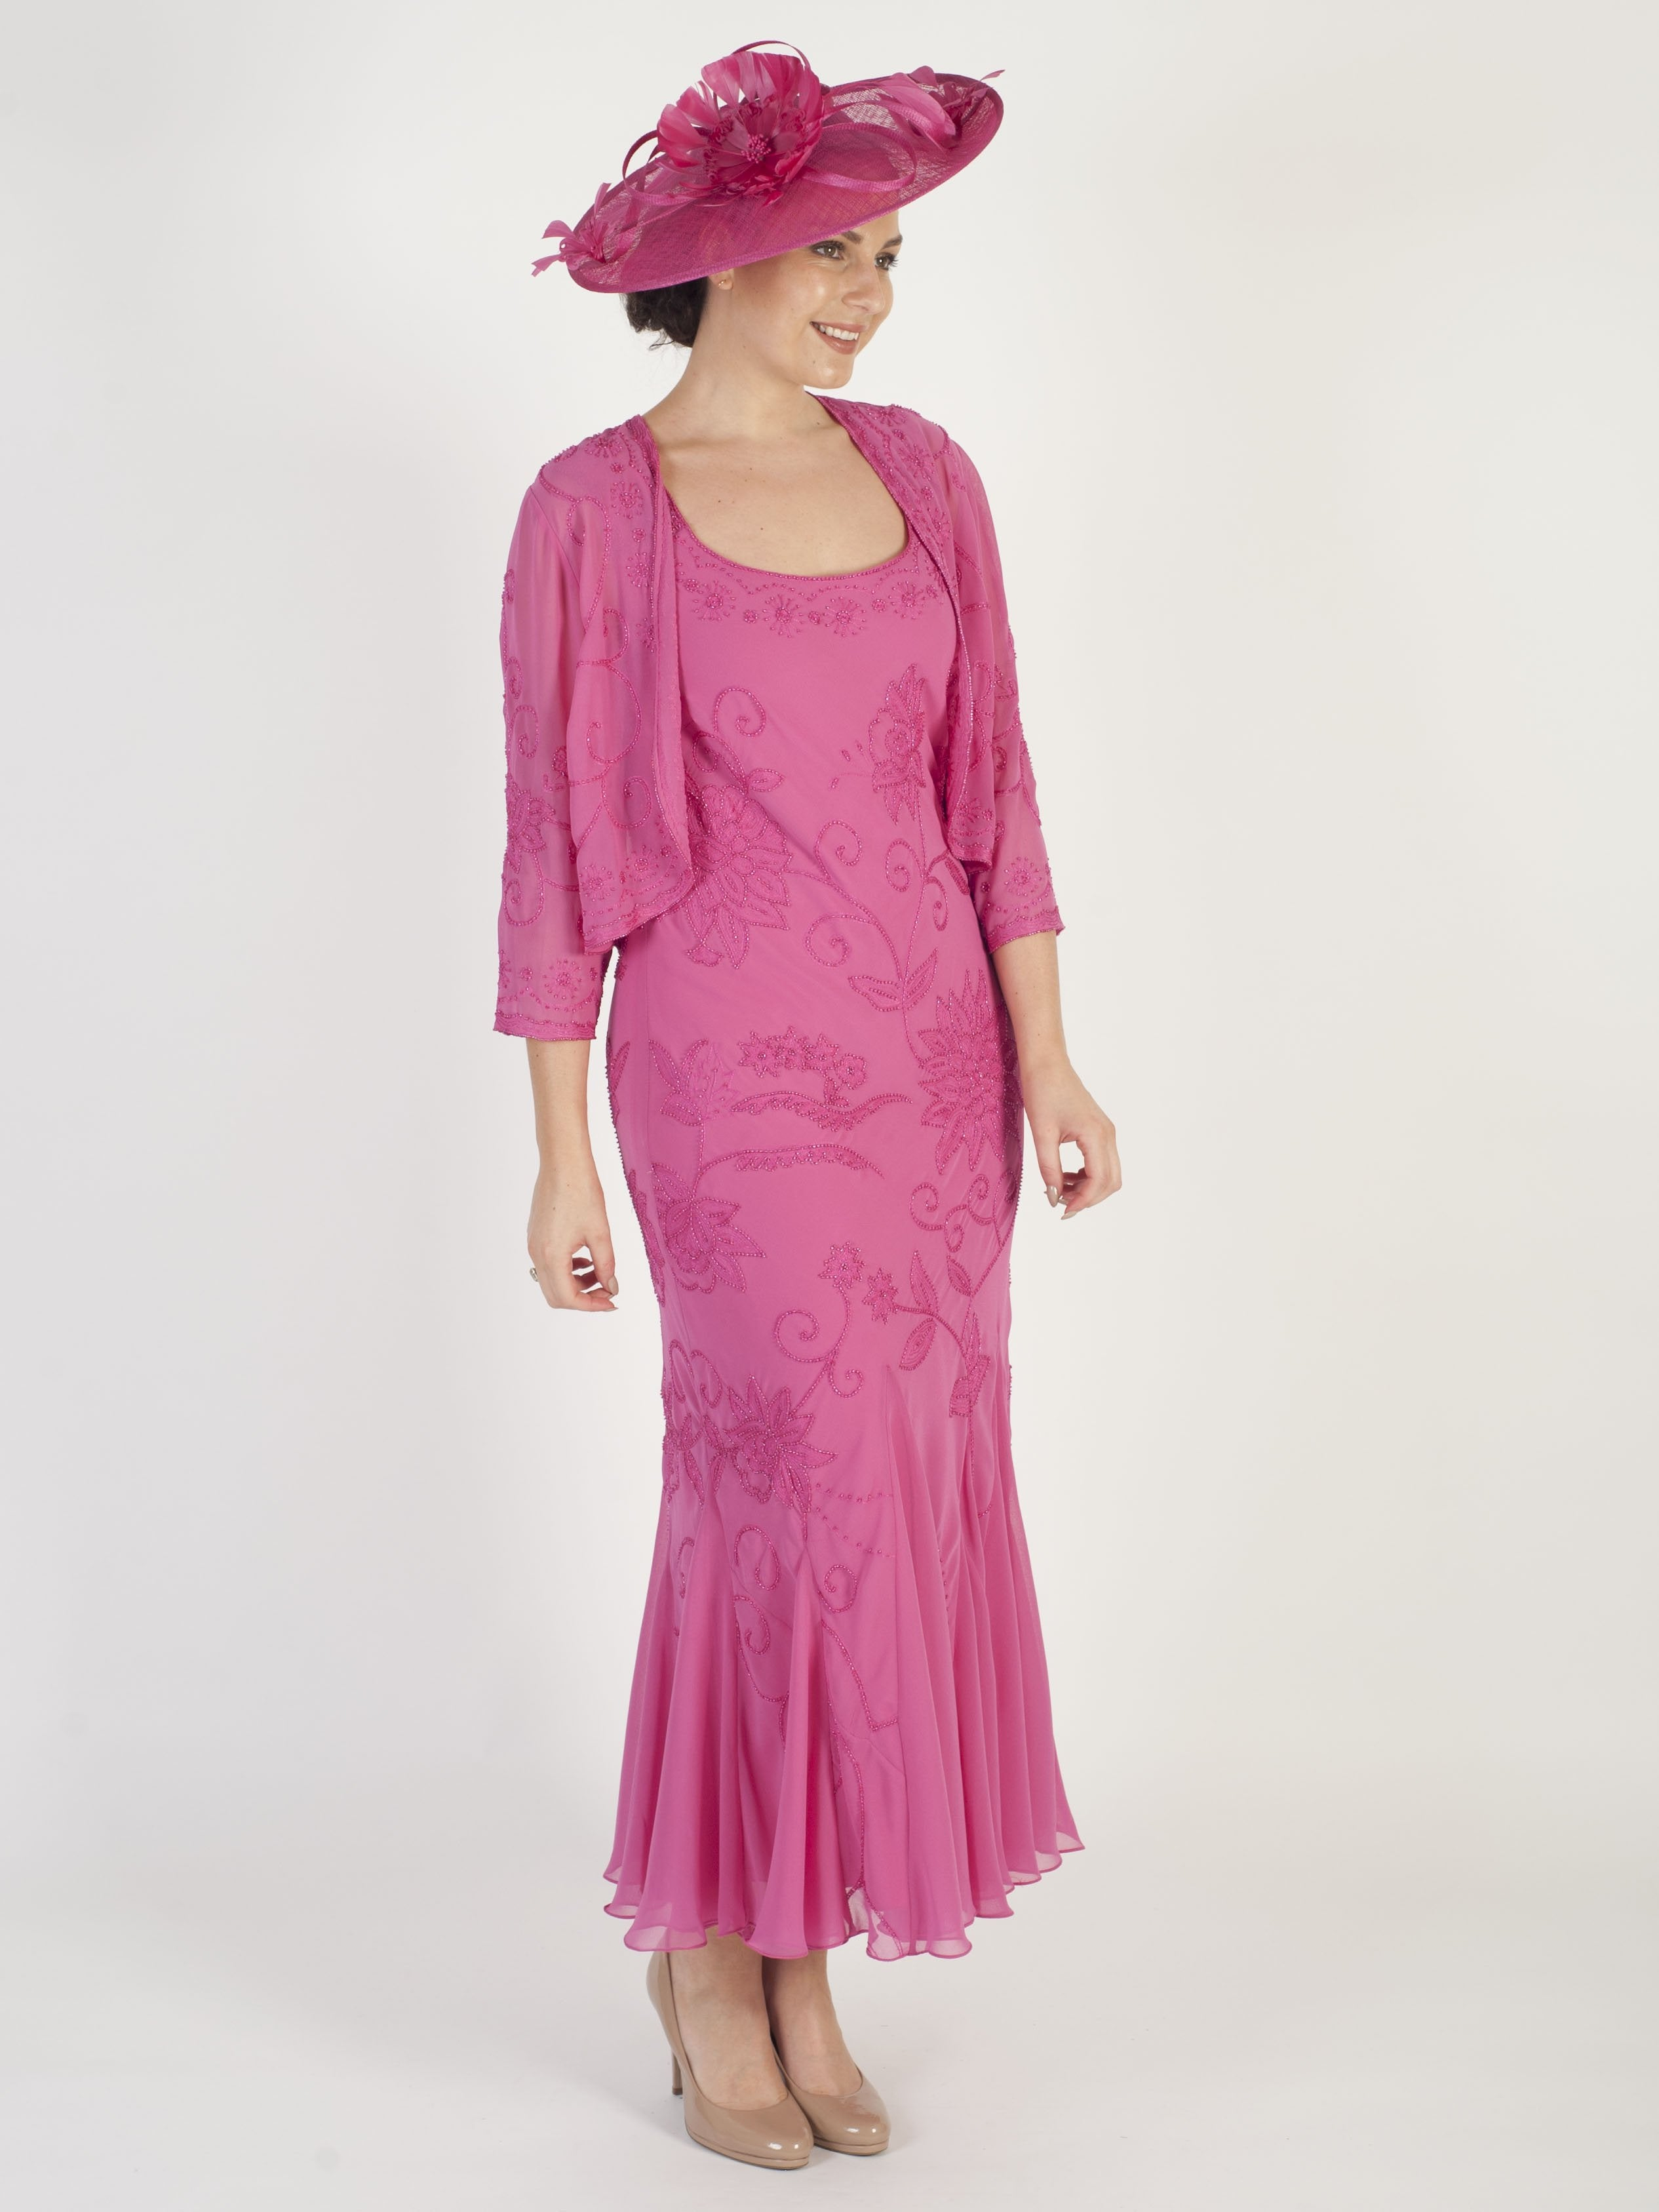 Rose Pink Embroidered and Beaded Dress